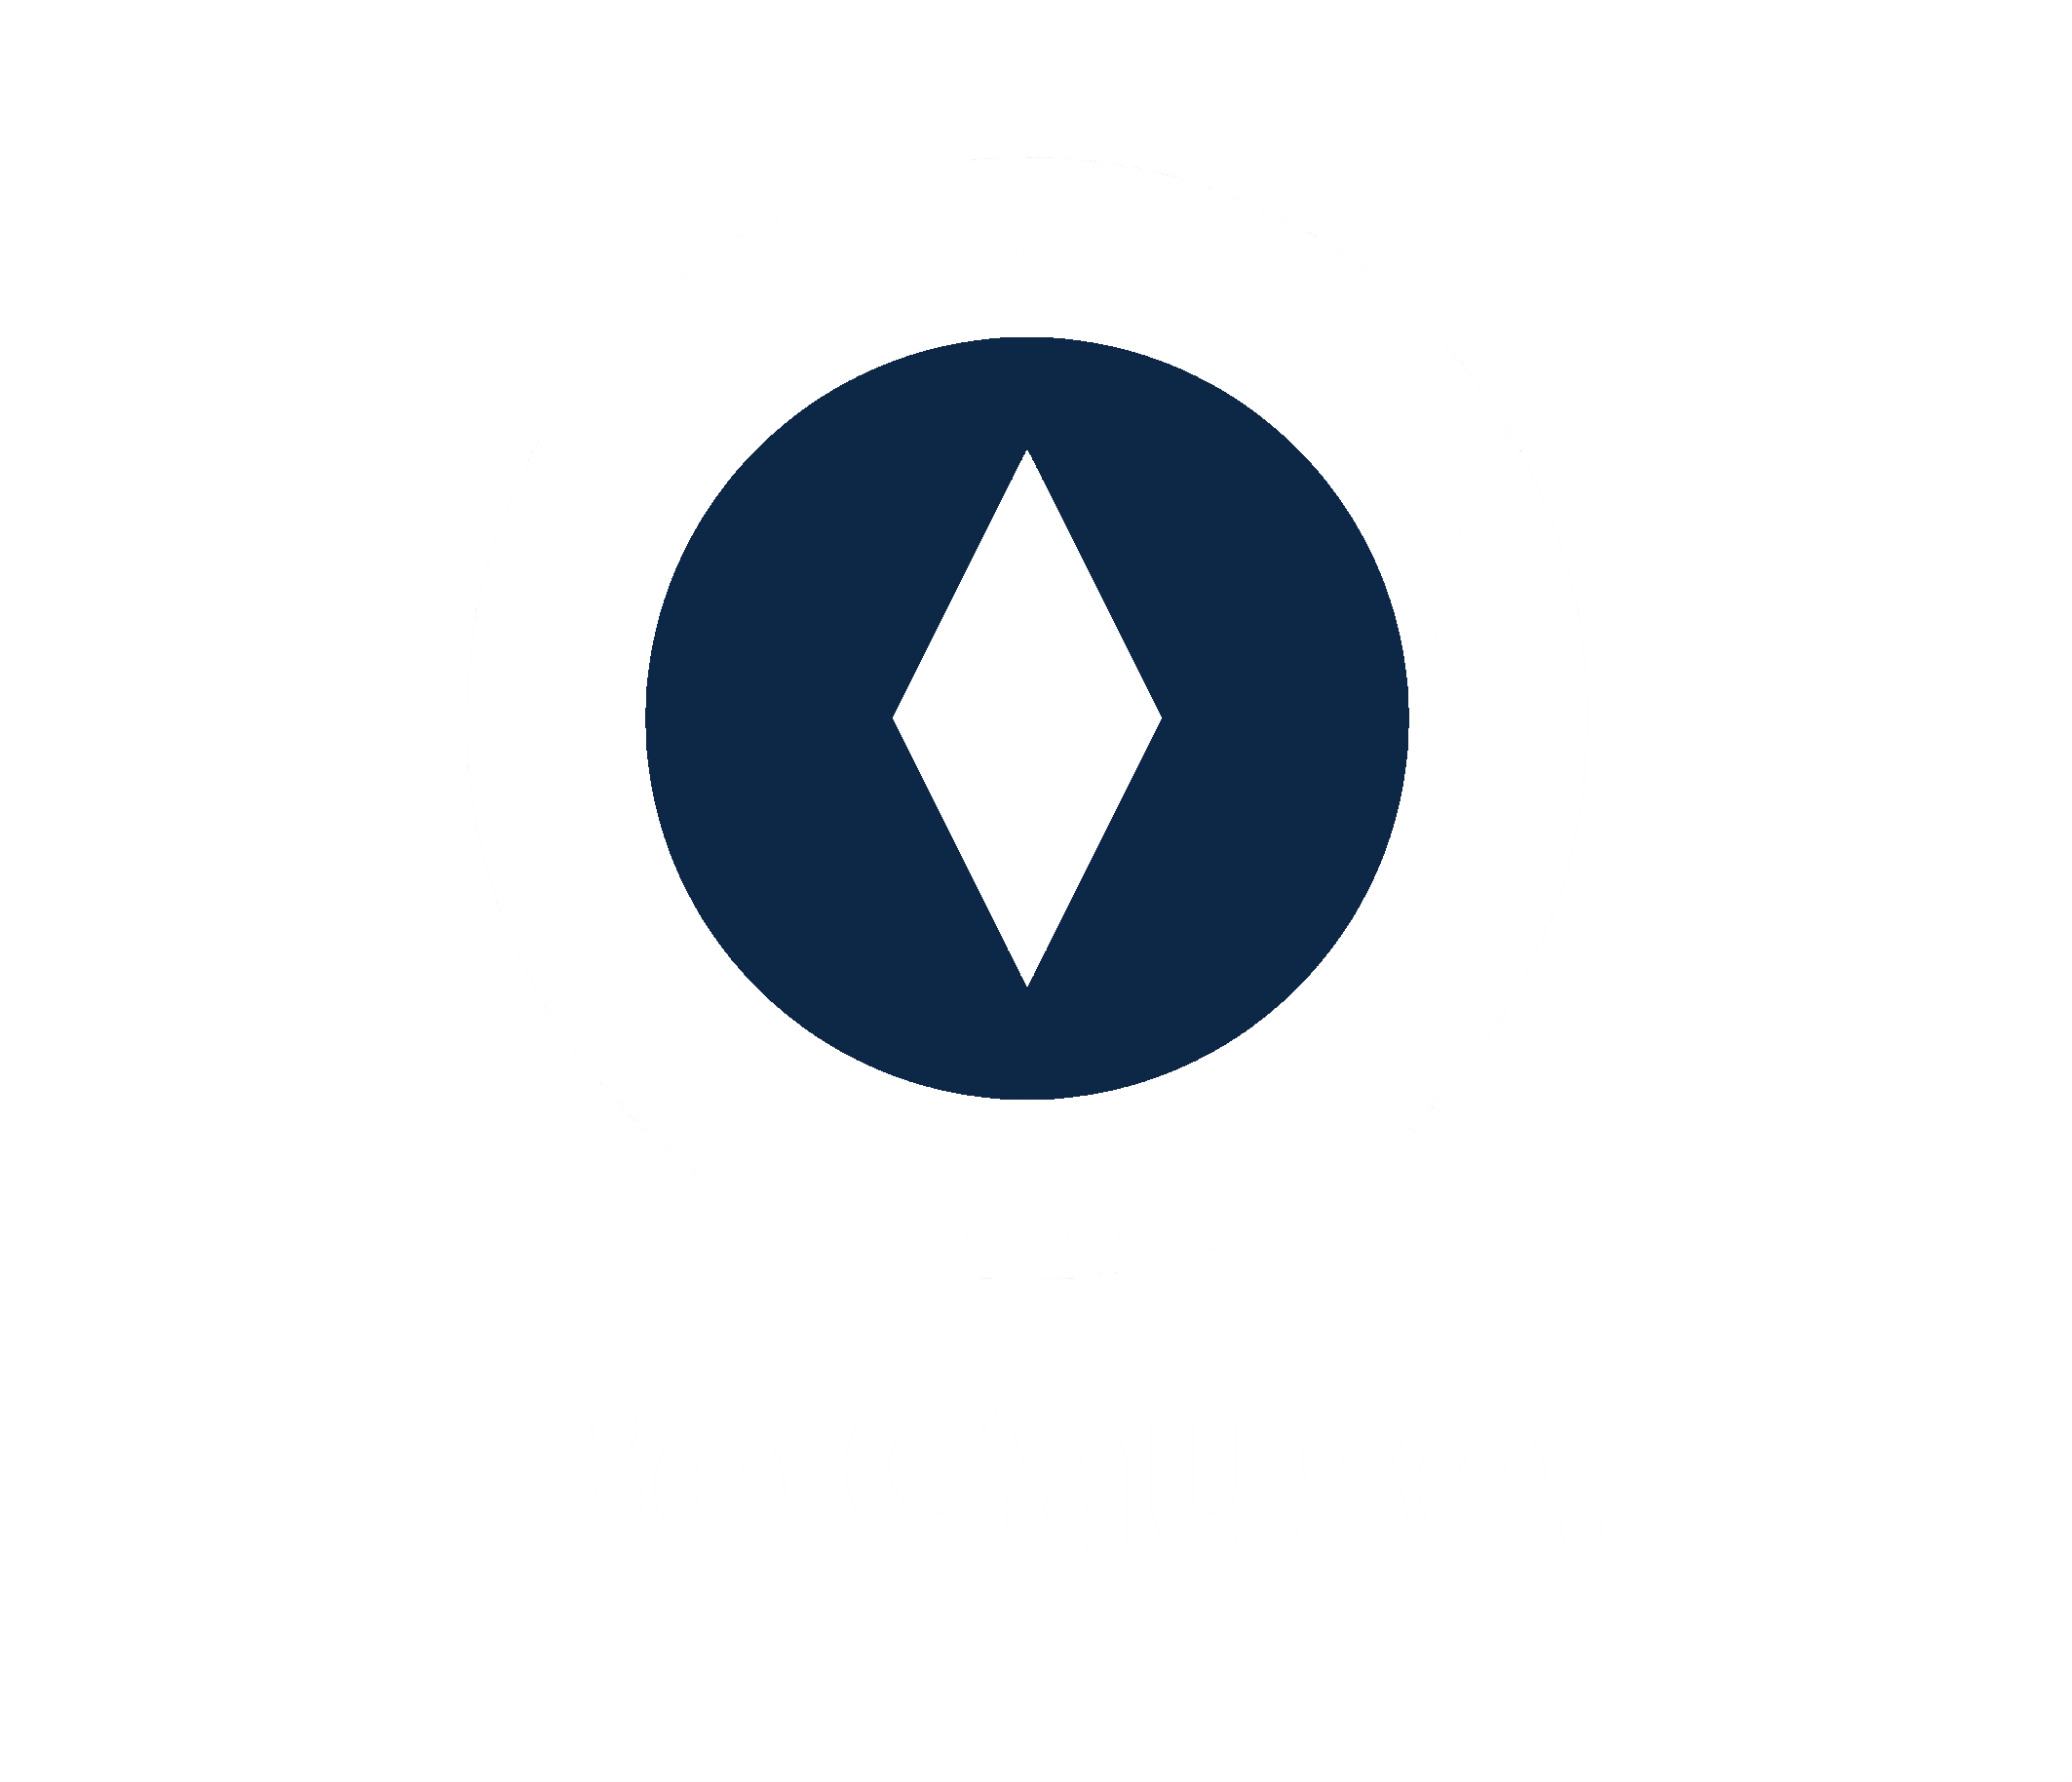 Be Cause.